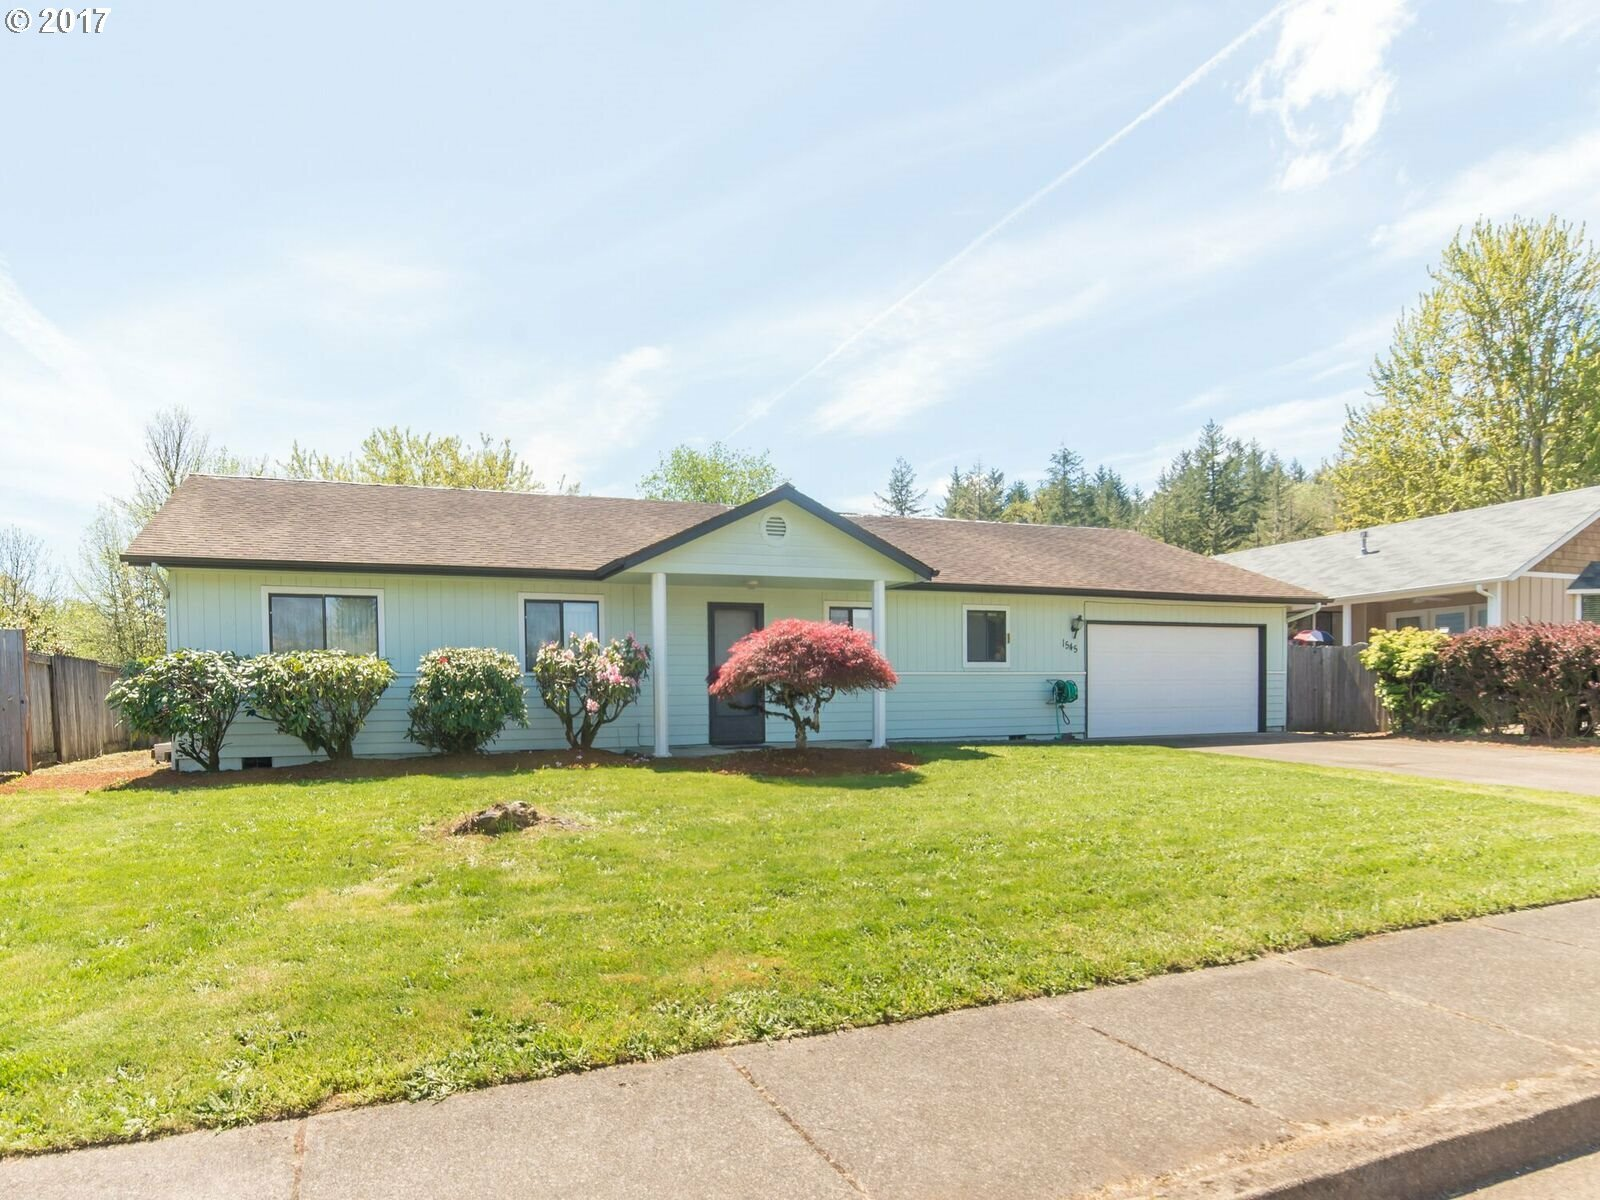 1545 Jason Lee Ave, Cottage Grove, OR - USA (photo 1)